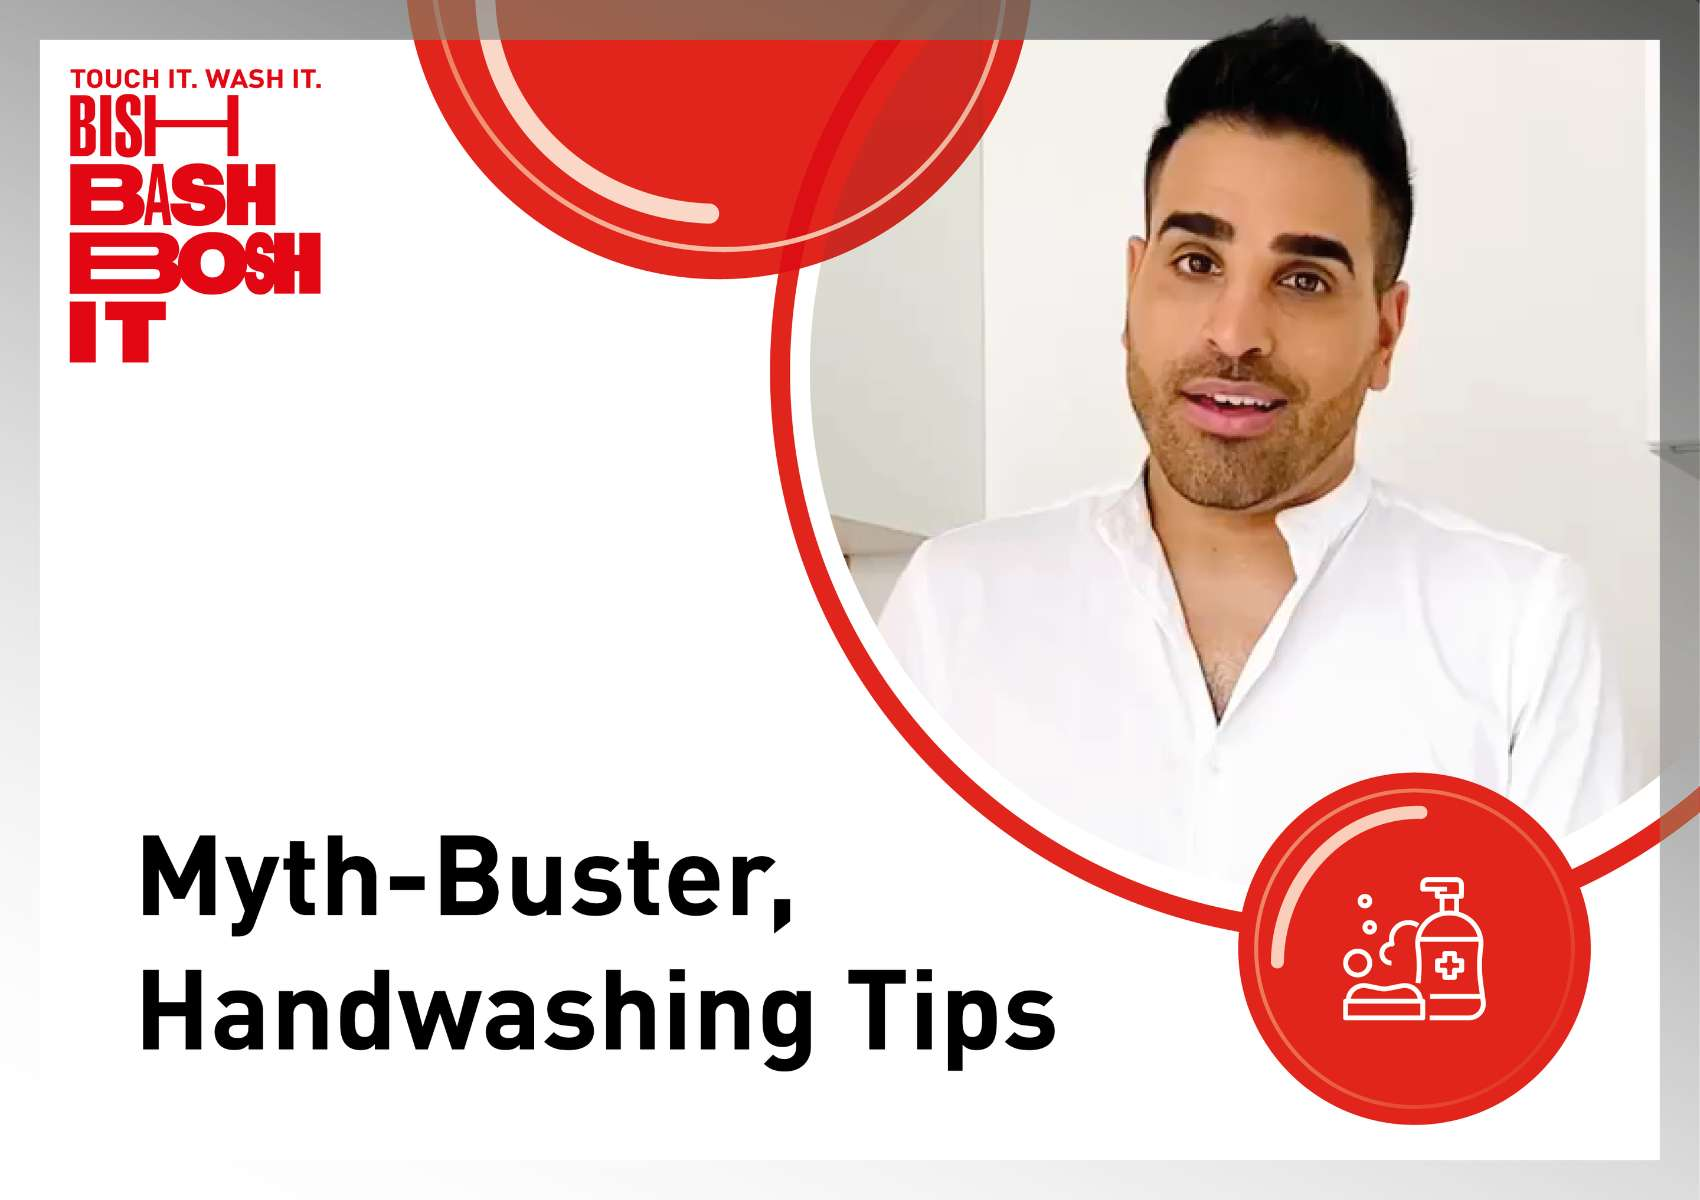 Dr Ranj Handwashing tips